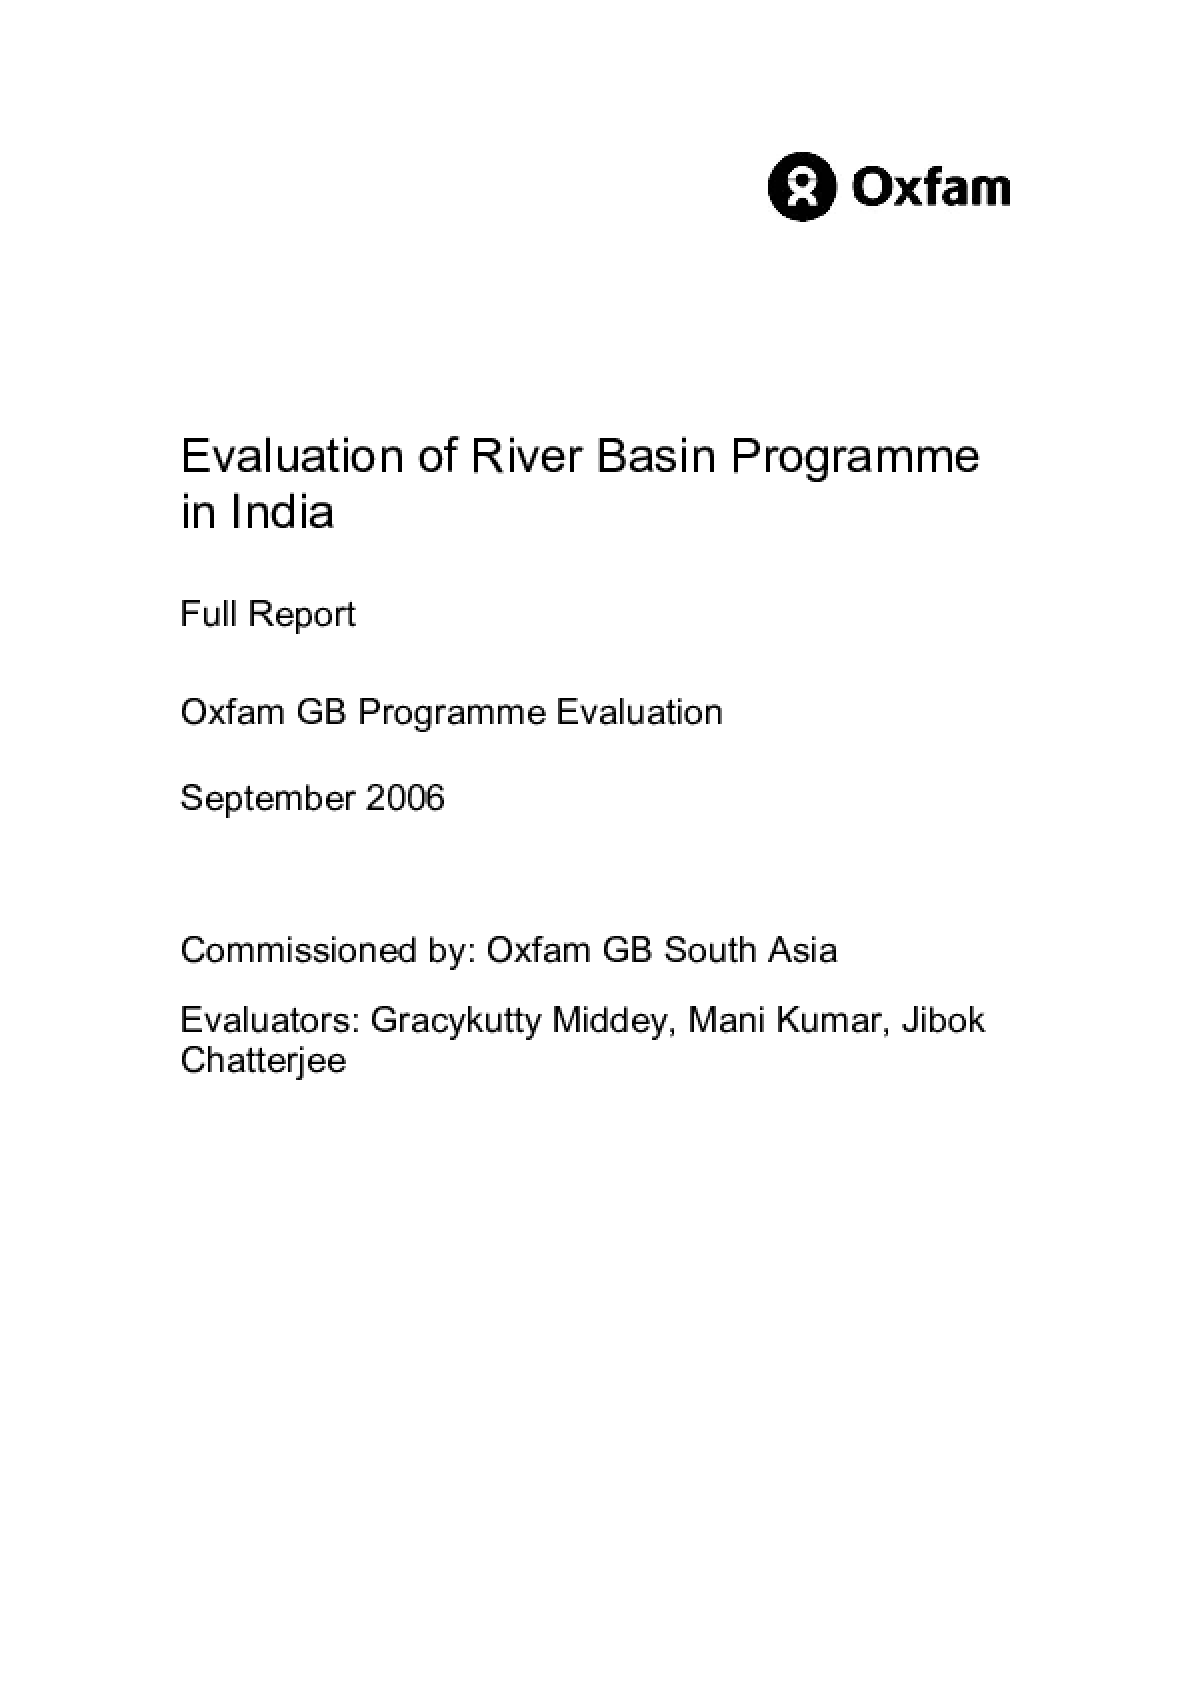 Evaluation of River Basin Programme in India